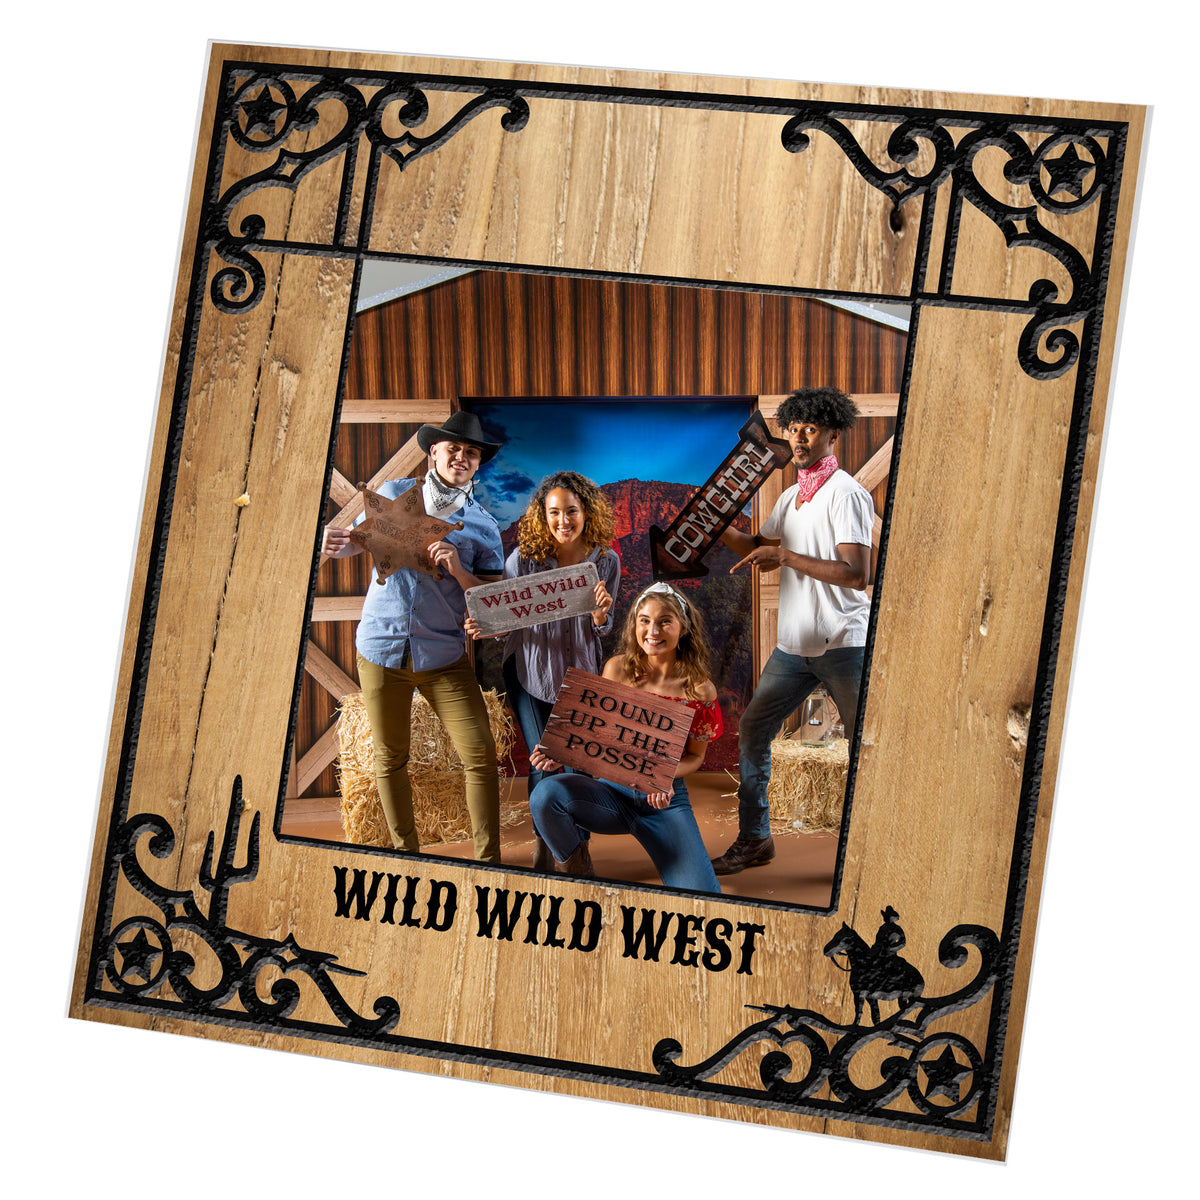 Wild West Fest Personalized Vogue Square Frame